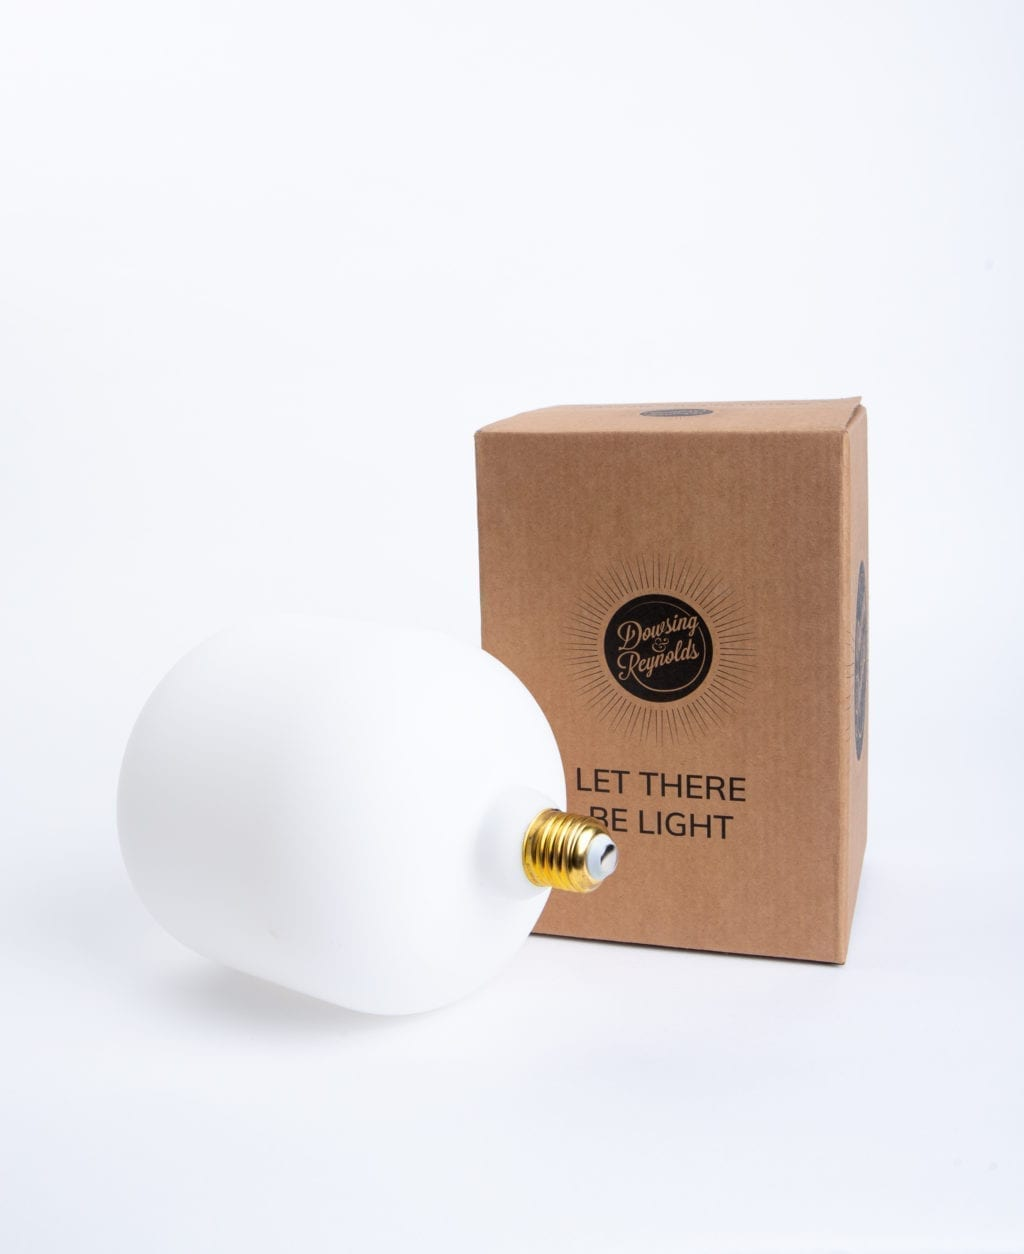 Pandora globe light bulb with cardboard box against white background